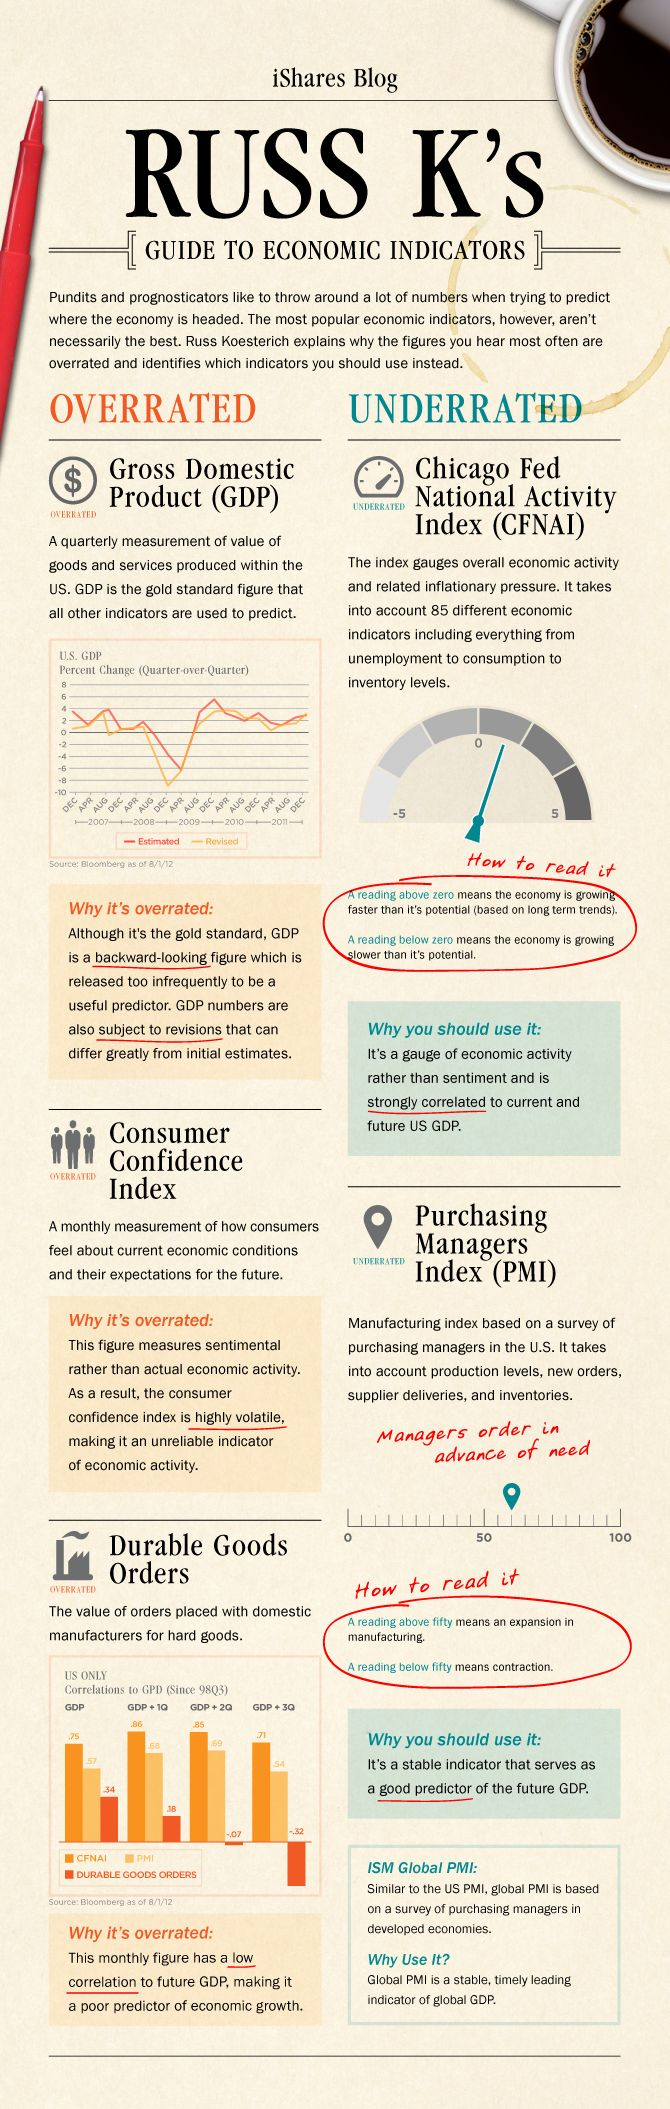 Overrated-Underrated Economic Indicators - infographic